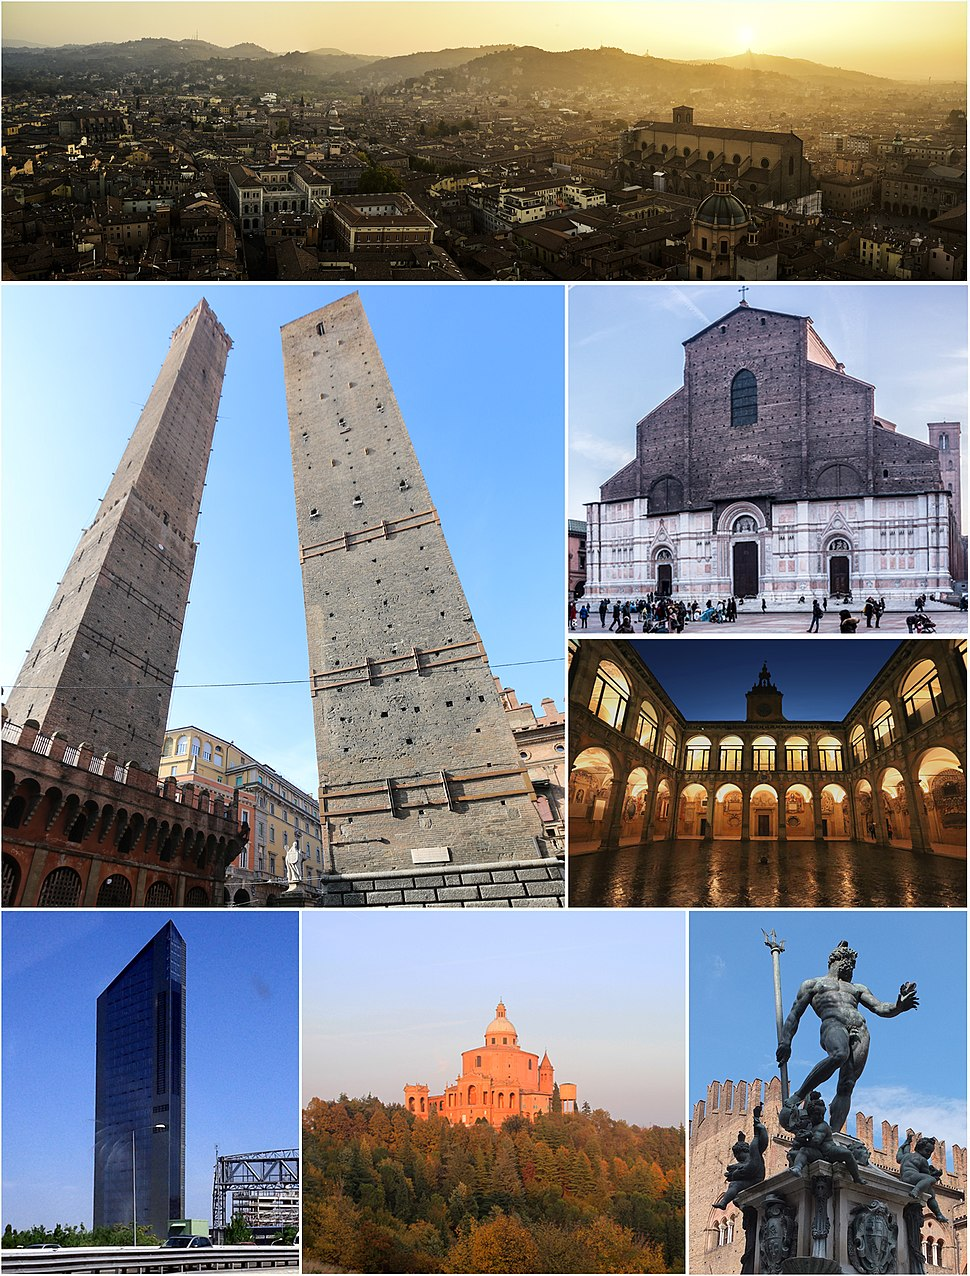 Clockwise from top: panorama of Bologna and the surrounding hills, San Petronio Basilica, University of Bologna, Fountain of Neptune, Sanctuary of the Madonna di San Luca, Unipol Tower and the Two Towers